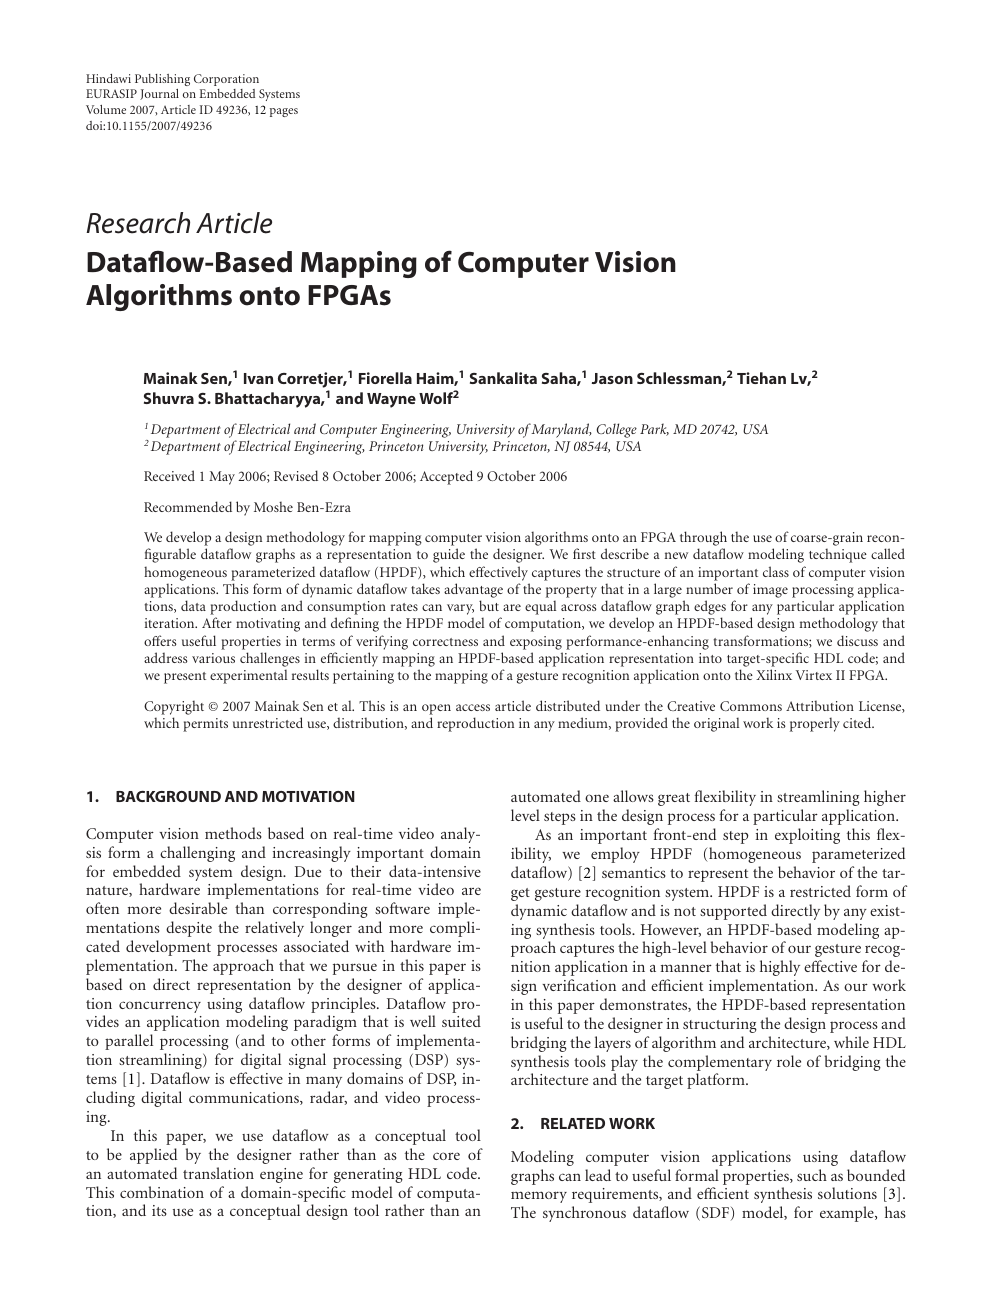 Dataflow Based Mapping Of Computer Vision Algorithms Onto Fpgas Topic Of Research Paper In Computer And Information Sciences Download Scholarly Article Pdf And Read For Free On Cyberleninka Open Science Hub